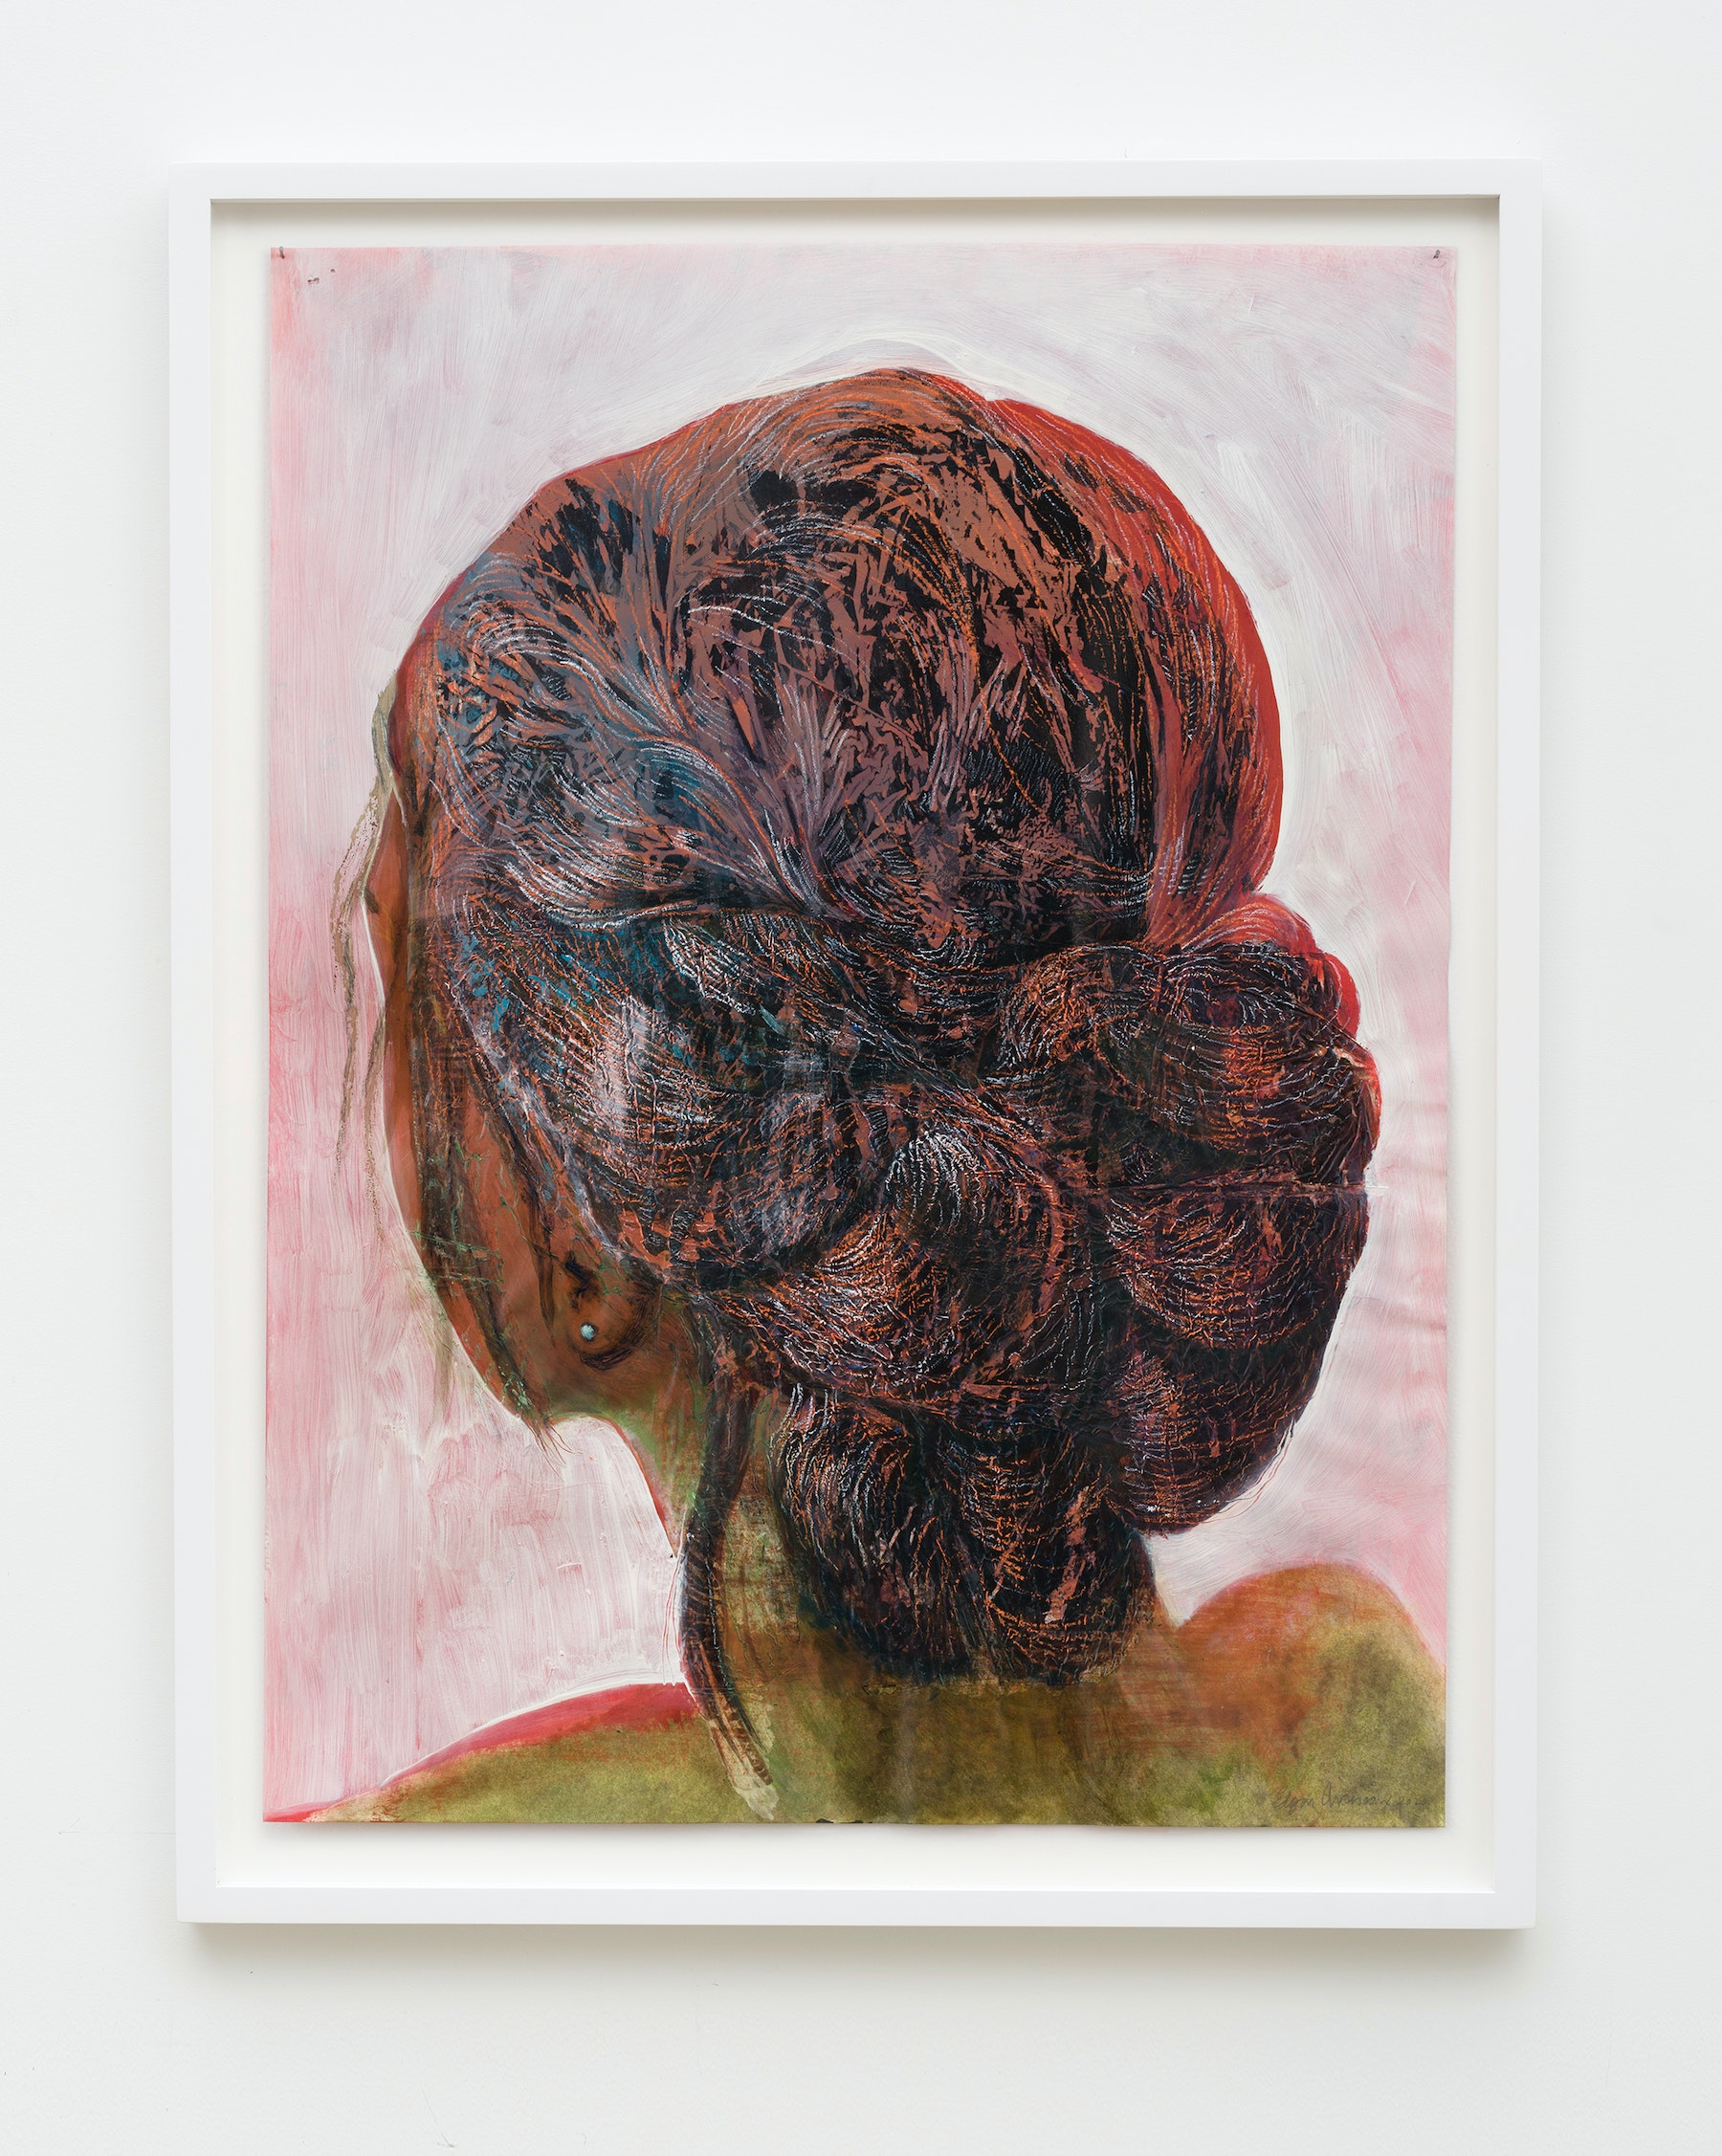 """Edgar Arceneaux """"There Sister,"""" 2020 Oil and acrylic on paper 24 x 18"""" [HxW] (60.96 x 45.72 cm) Inventory #ARC621 Courtesy of the artist and Vielmetter Los Angeles"""